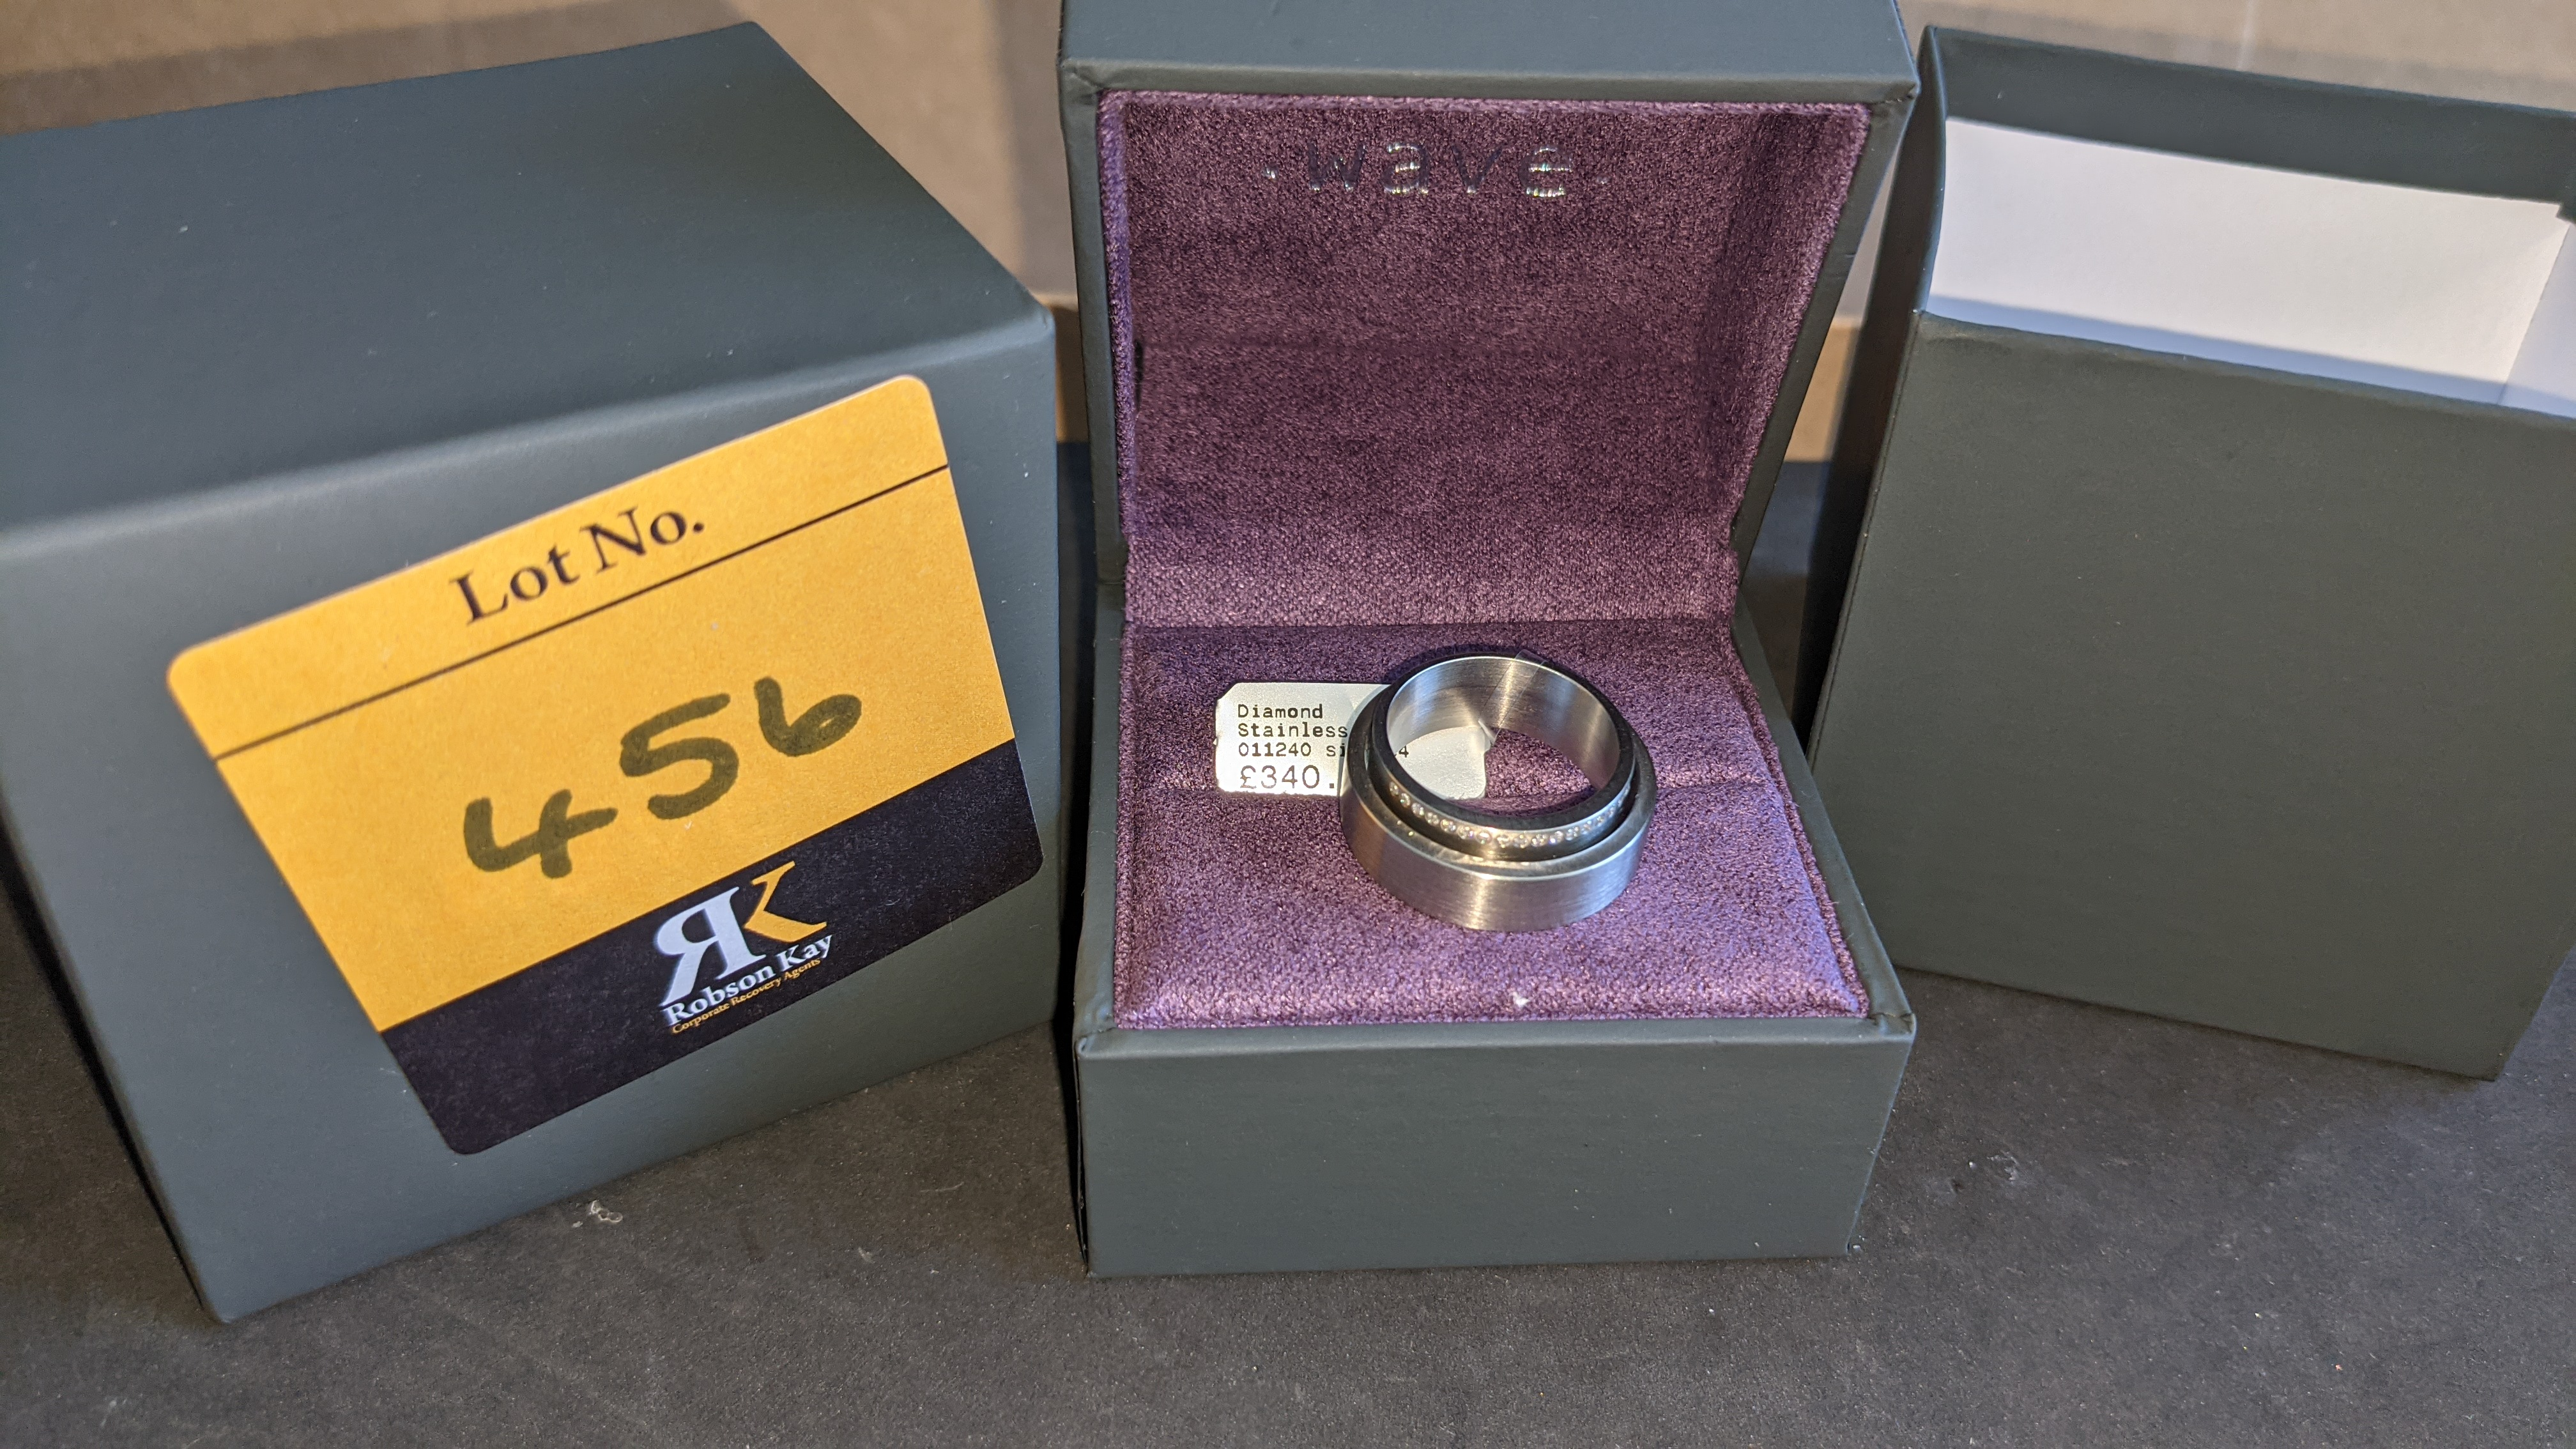 Stainless steel & diamond unusually shaped ring with inner & outer circles joined on one side, RRP £